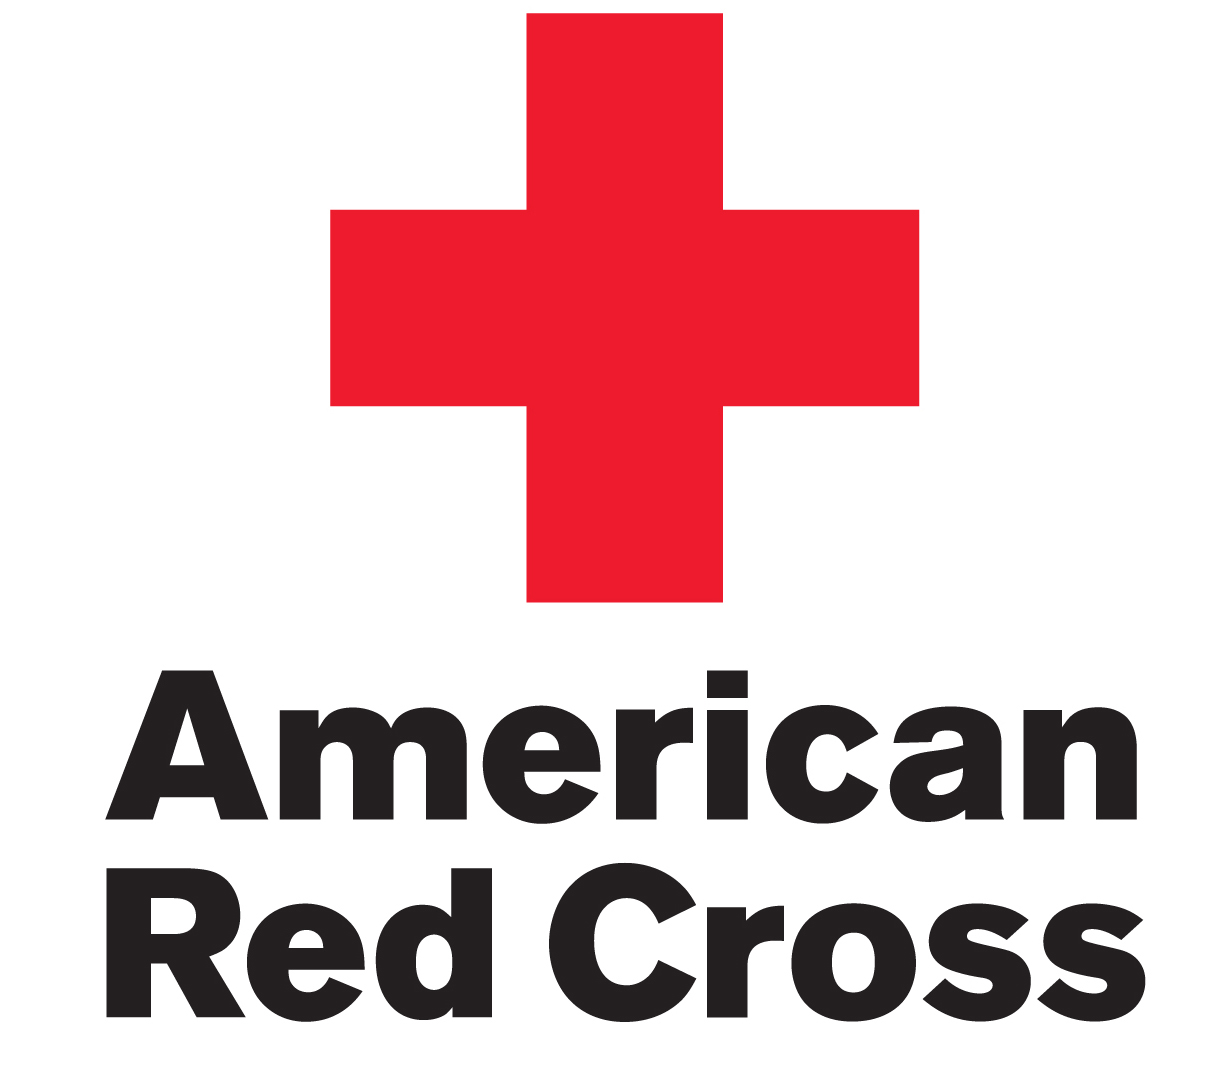 American Red Cross Cpr Certification Class October 16 At Nyfs The